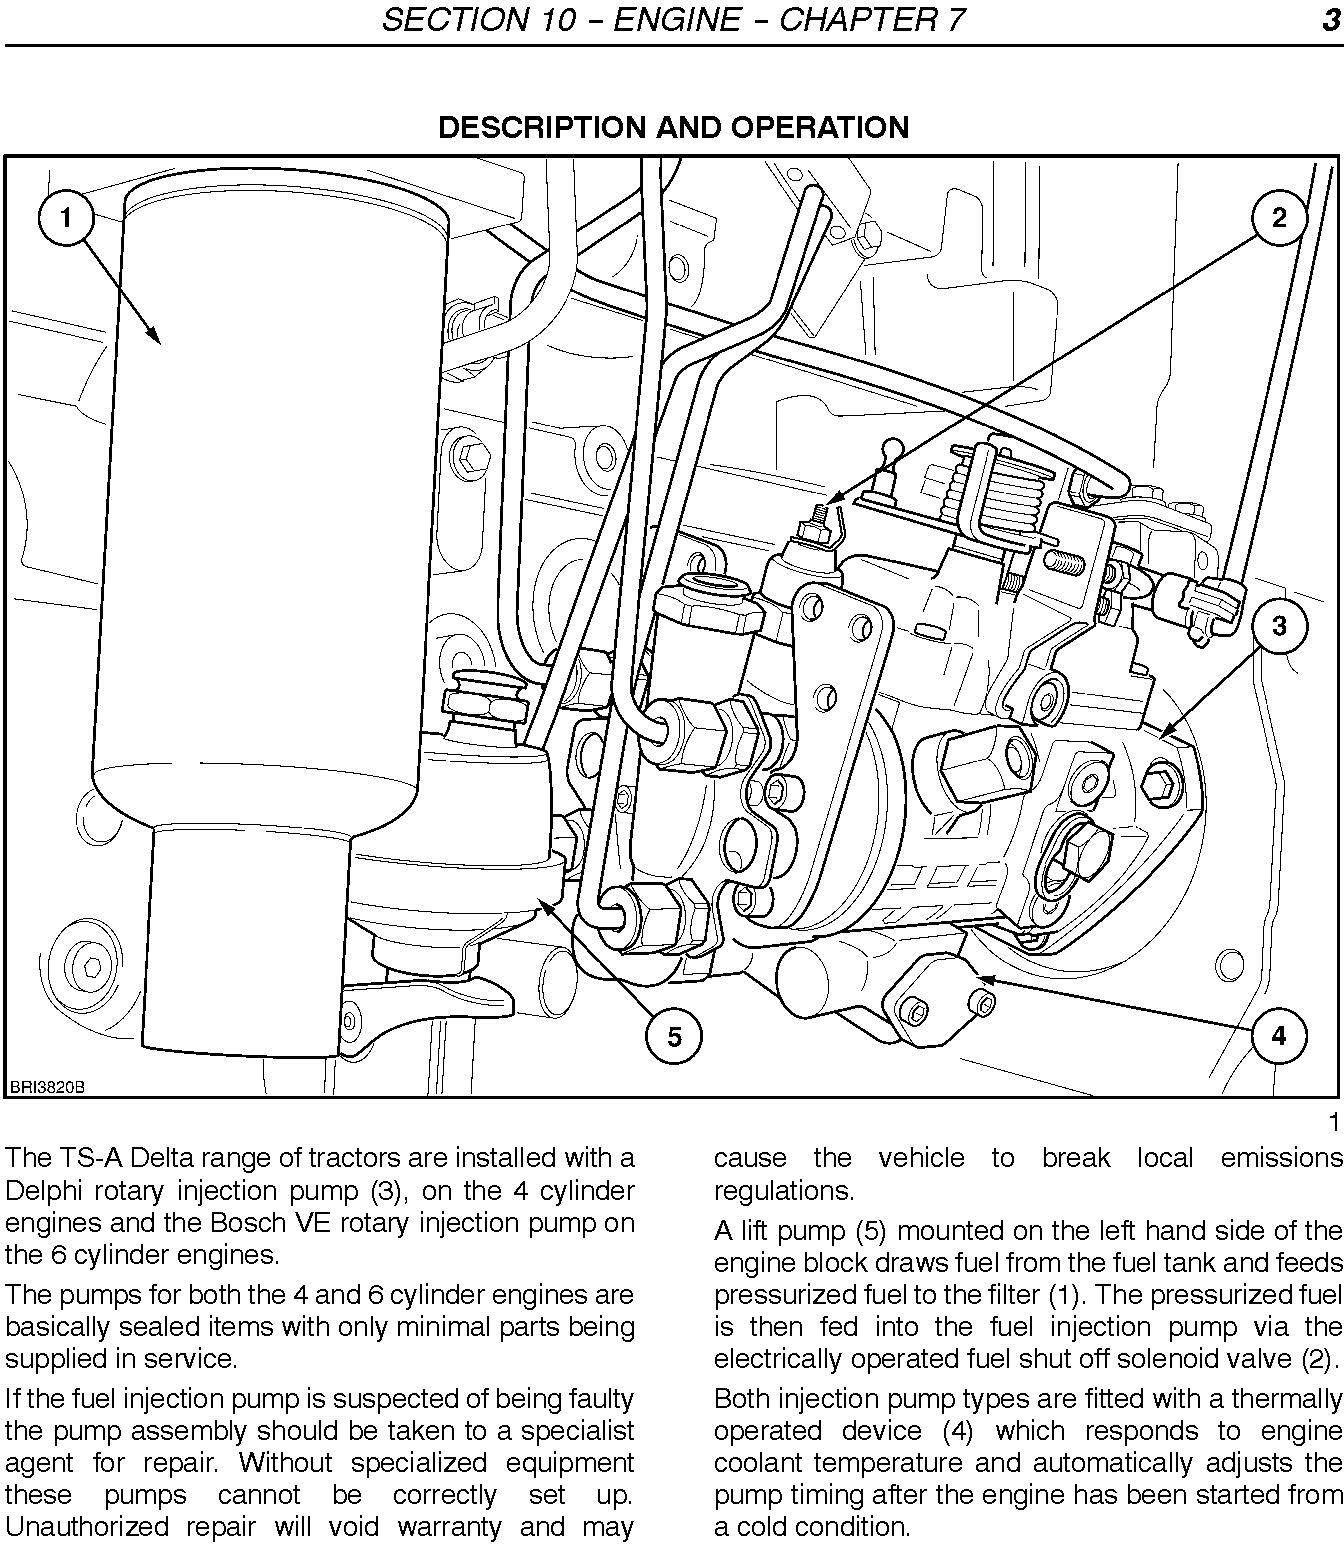 New Holland TS100A, TS110A, TS115A, TS125A, TS130A, TS135A, T6010, T6020, T6030,T6050 Service Manual - 2